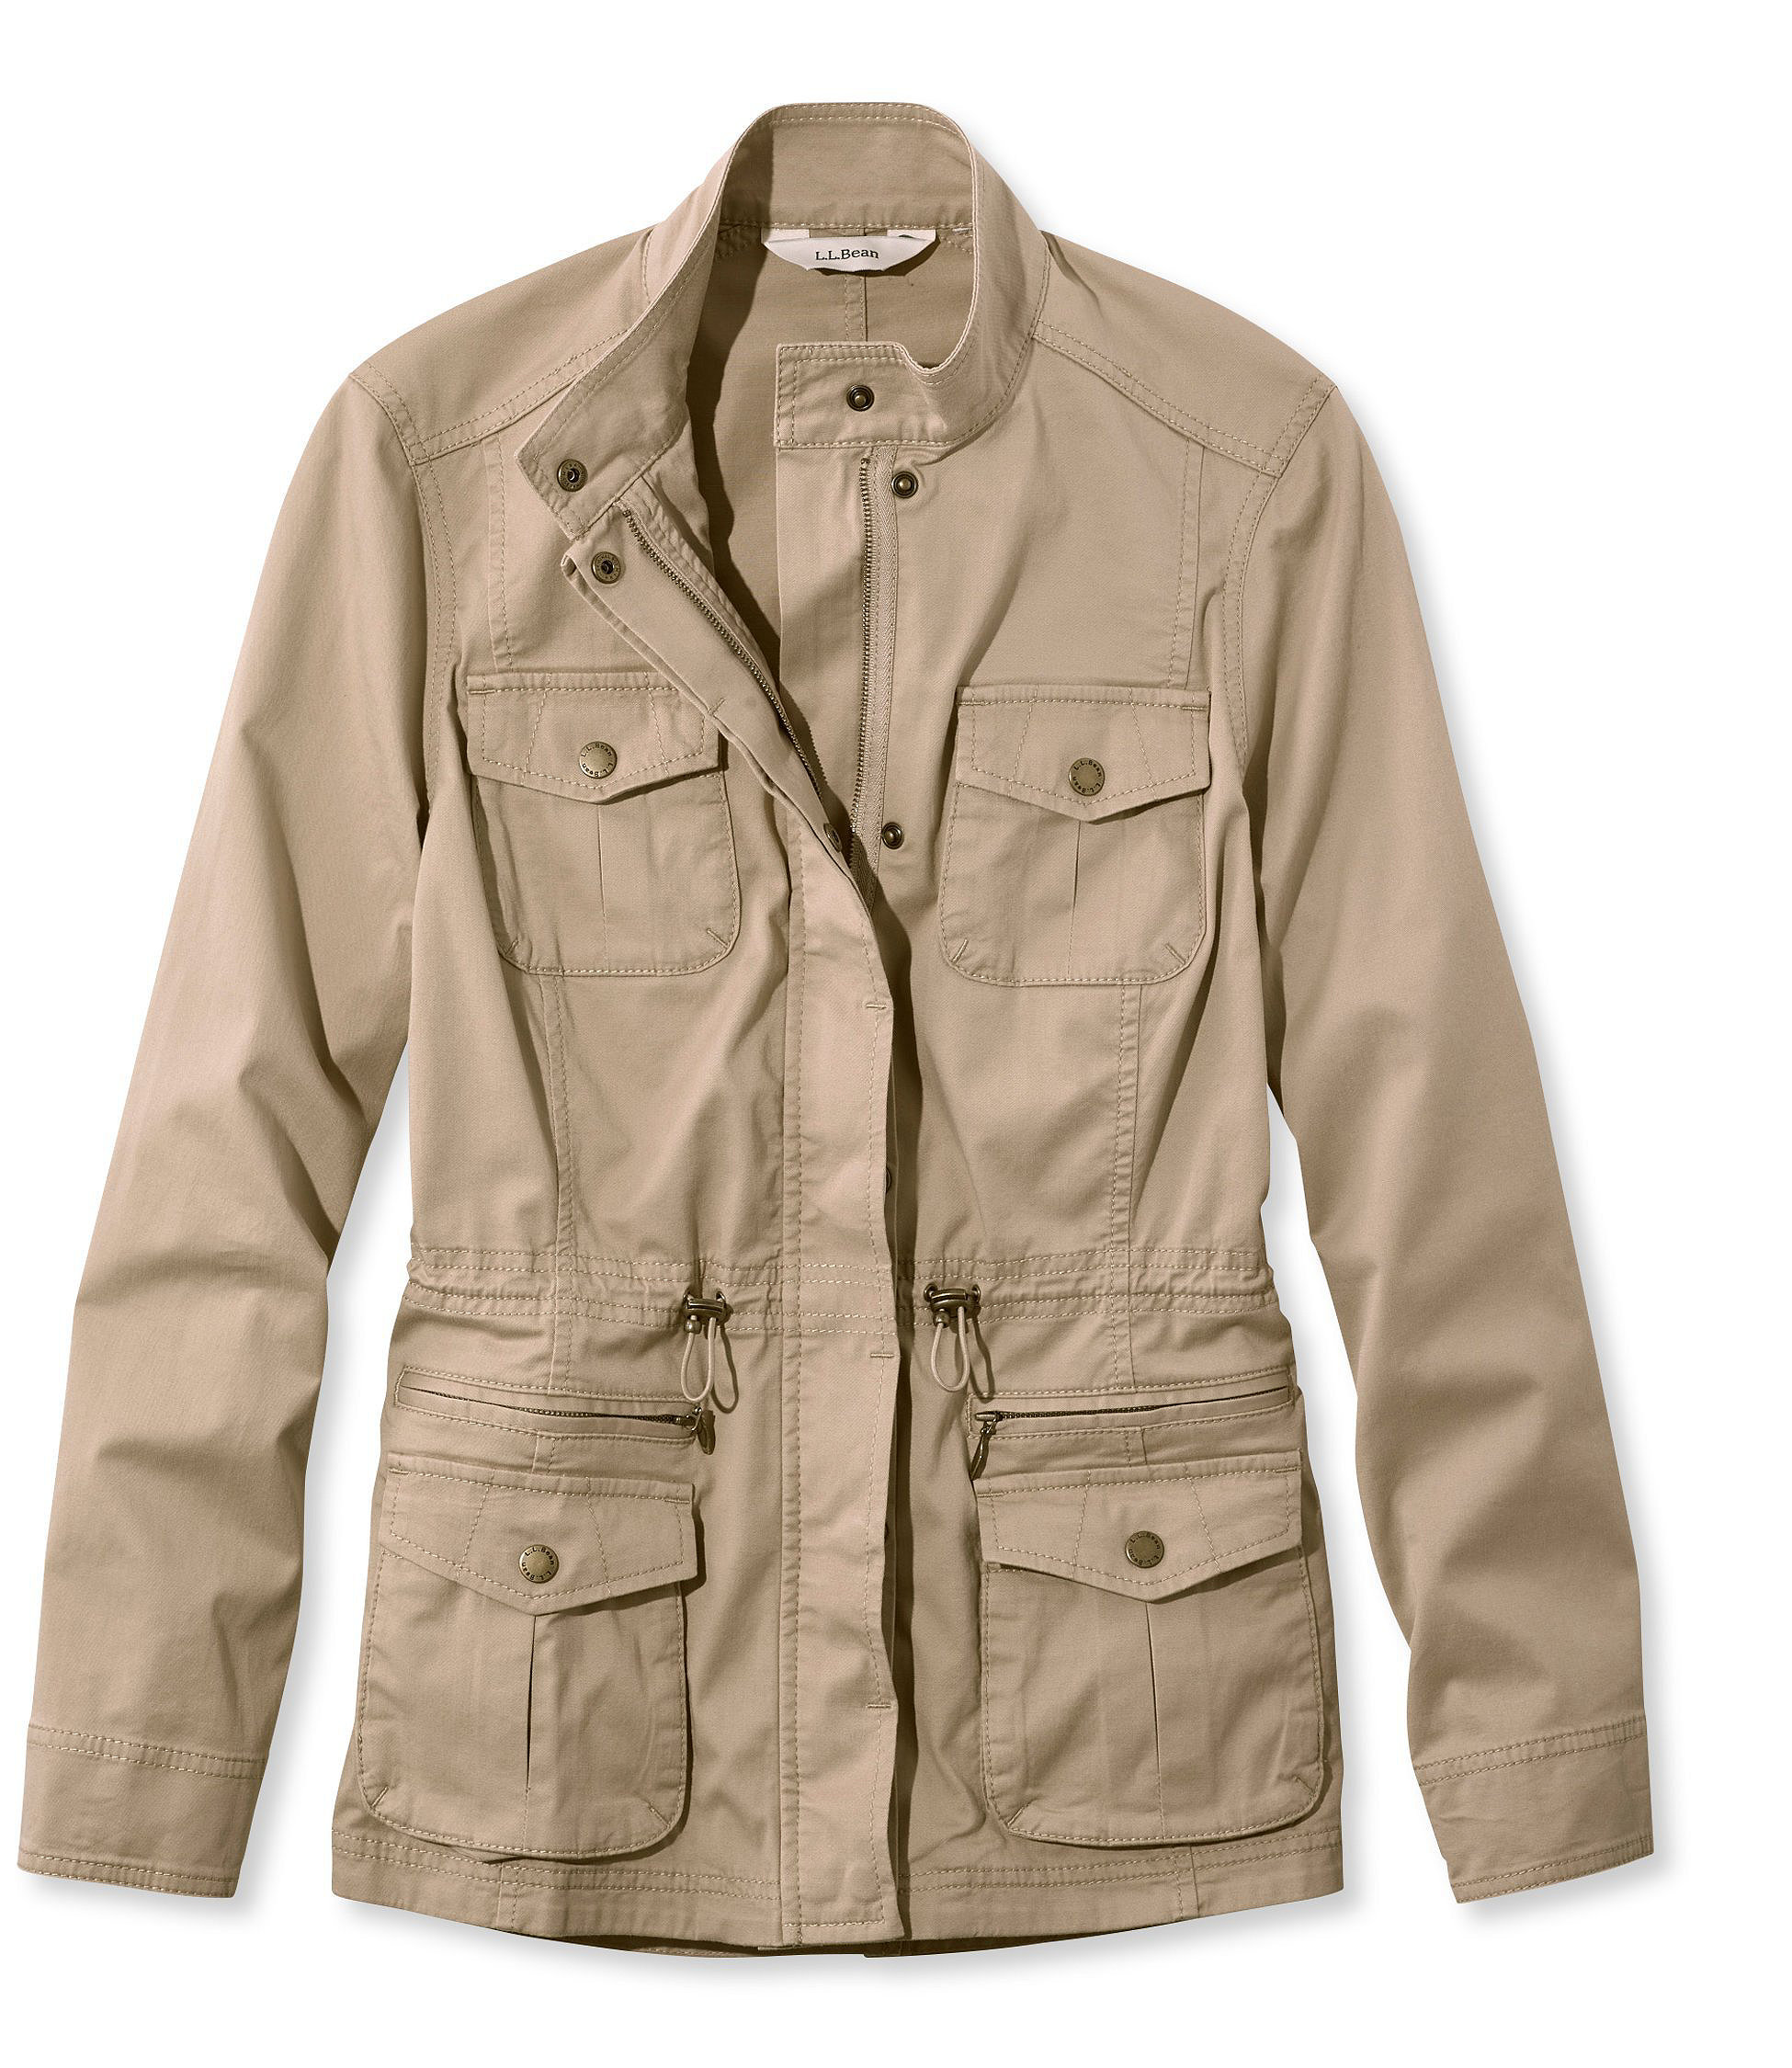 Winter Coats - Womens Coats and Jackets | Free Shipping at L.L.Bean